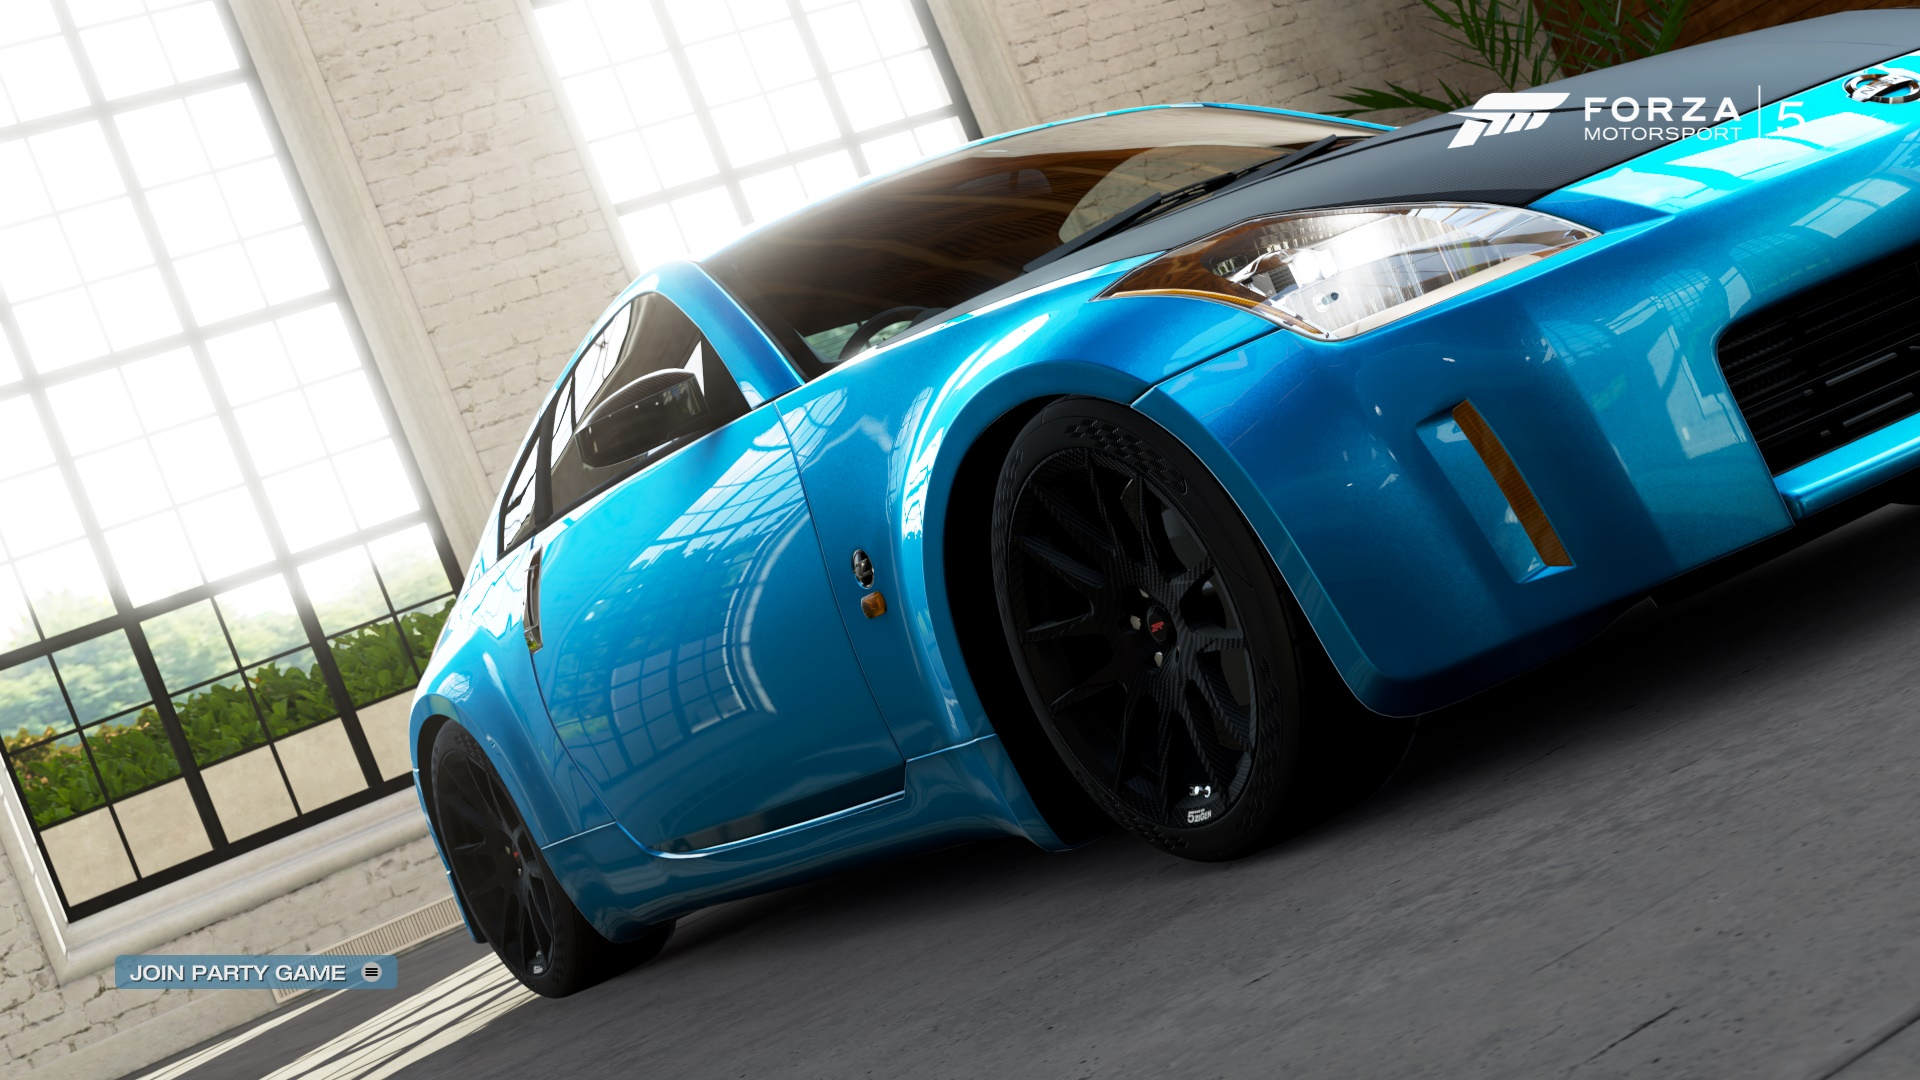 Show Your MnM Cars (All Forzas) - Page 17 11092939276_d6ef4be826_o